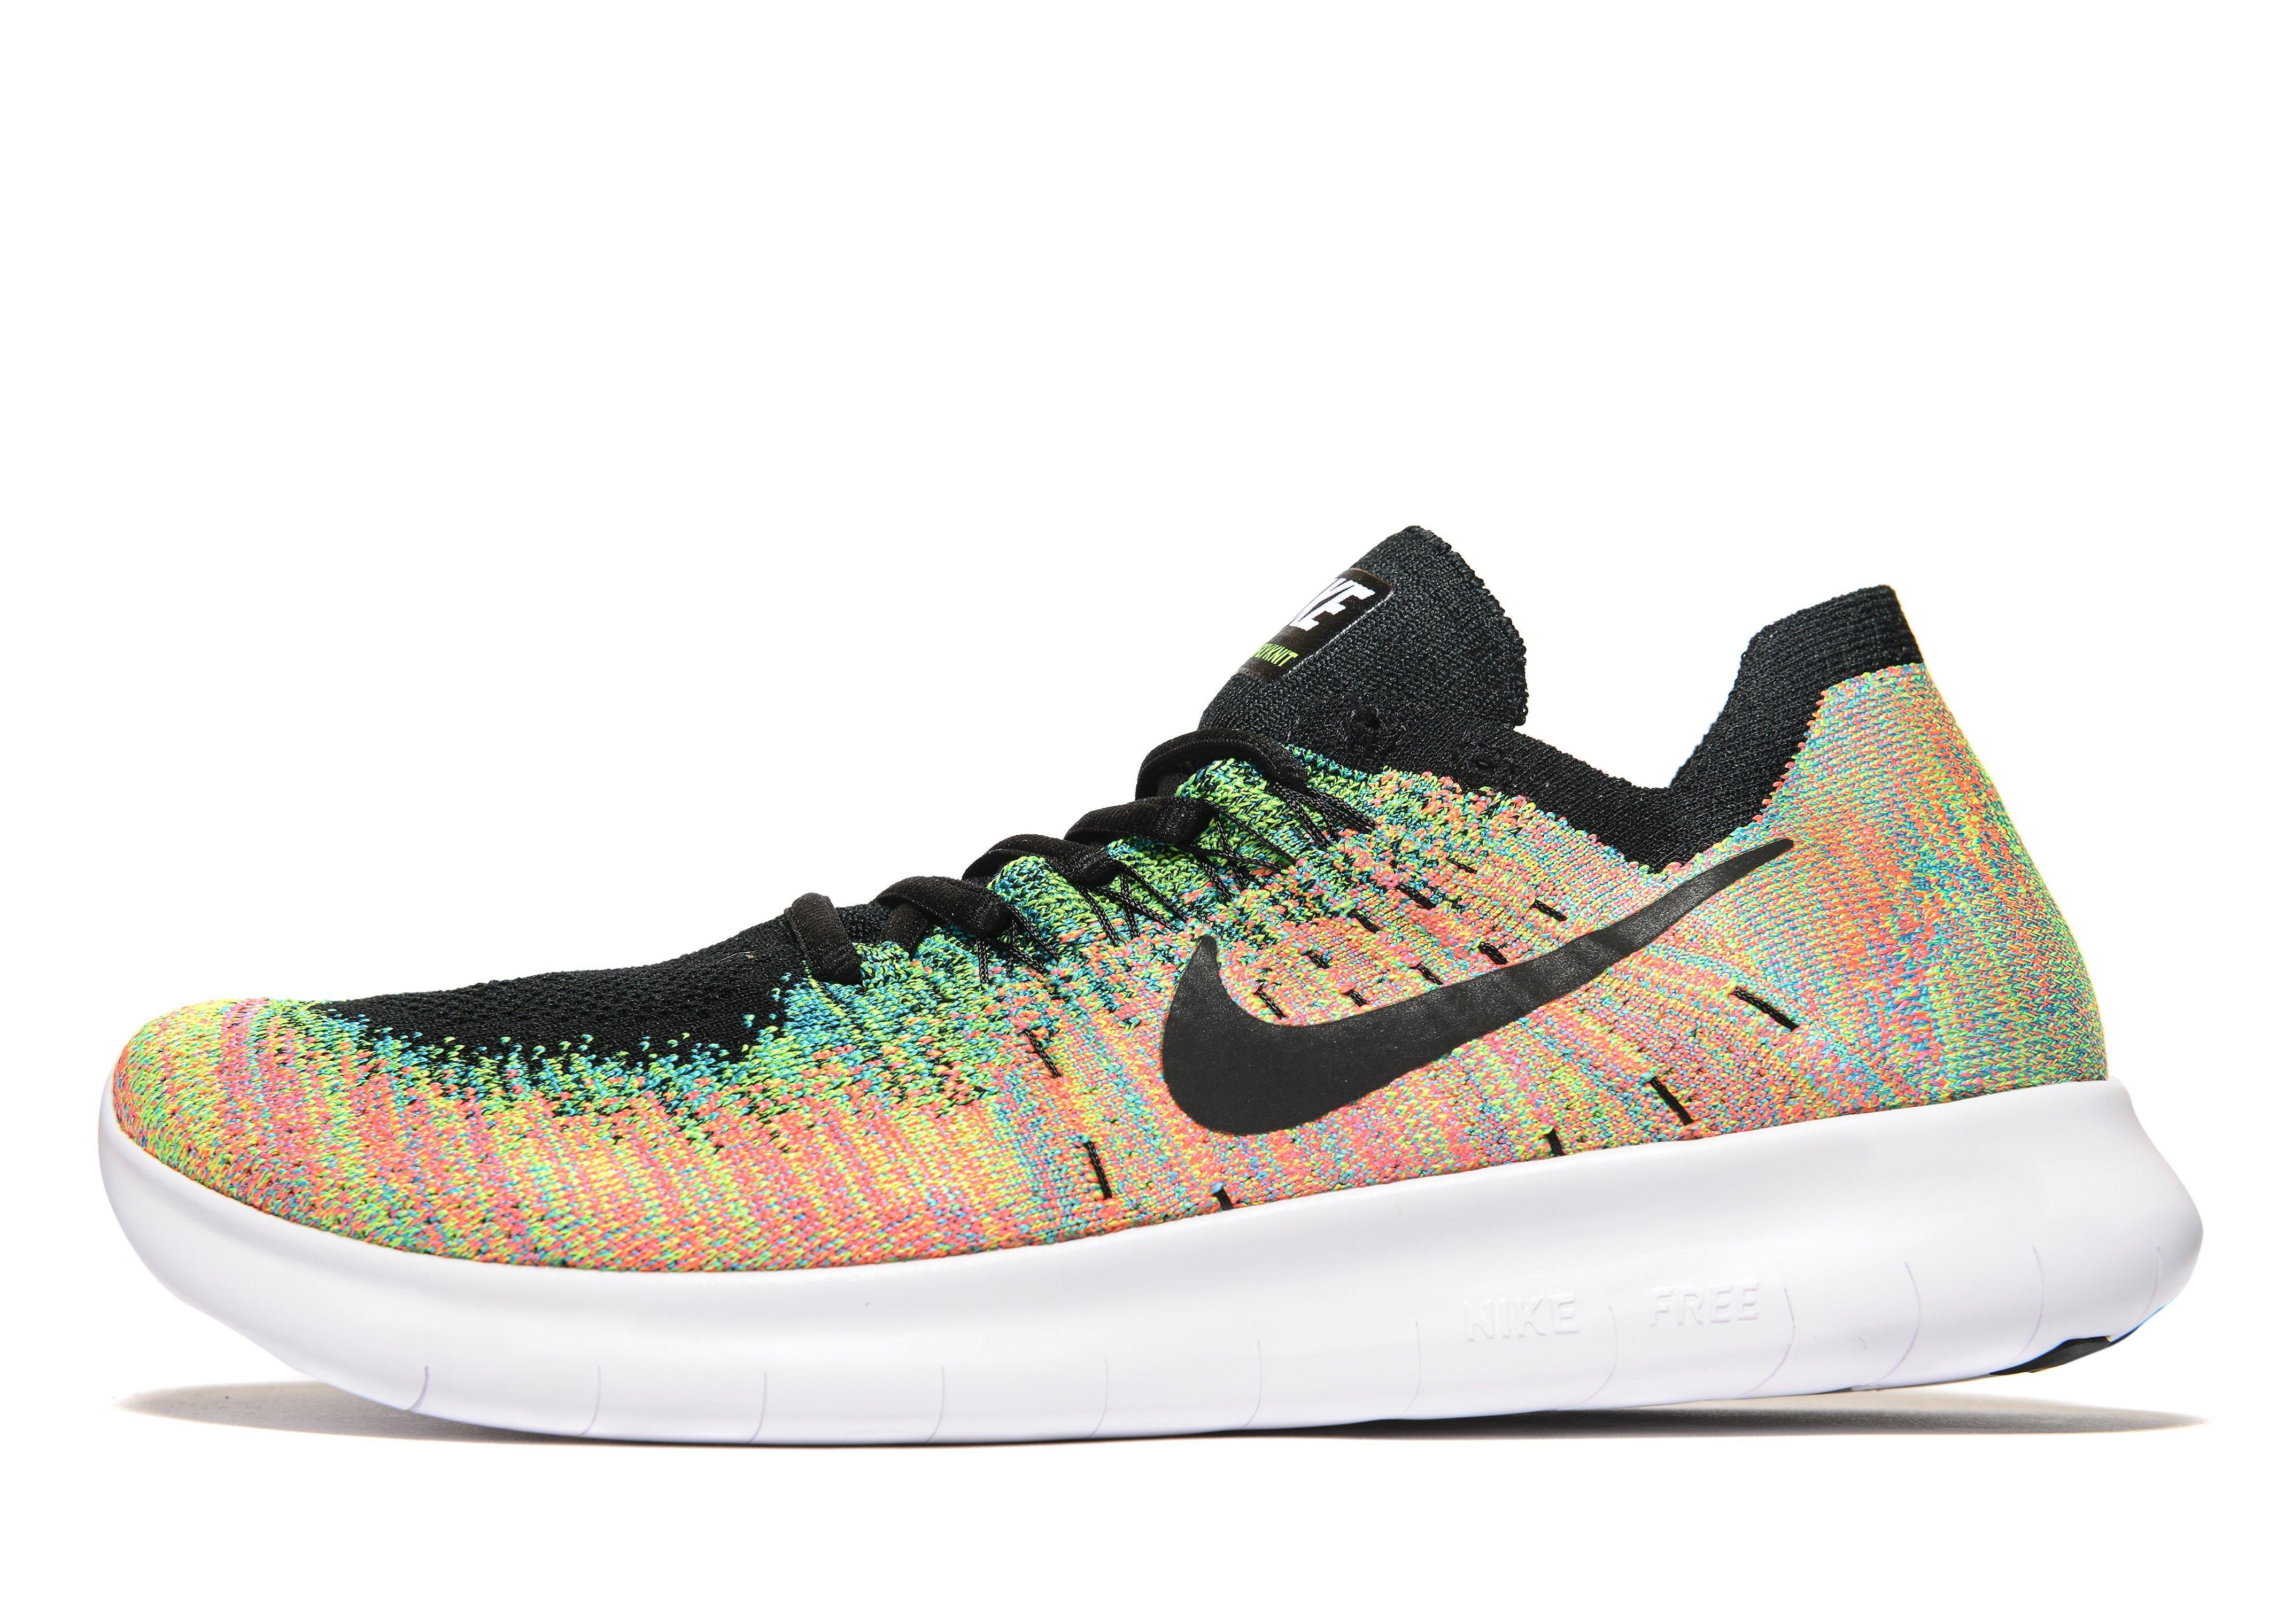 359a8b1af29 Nike - Multicolor Free Rn Flyknit 2017 Running Shoes for Men - Lyst